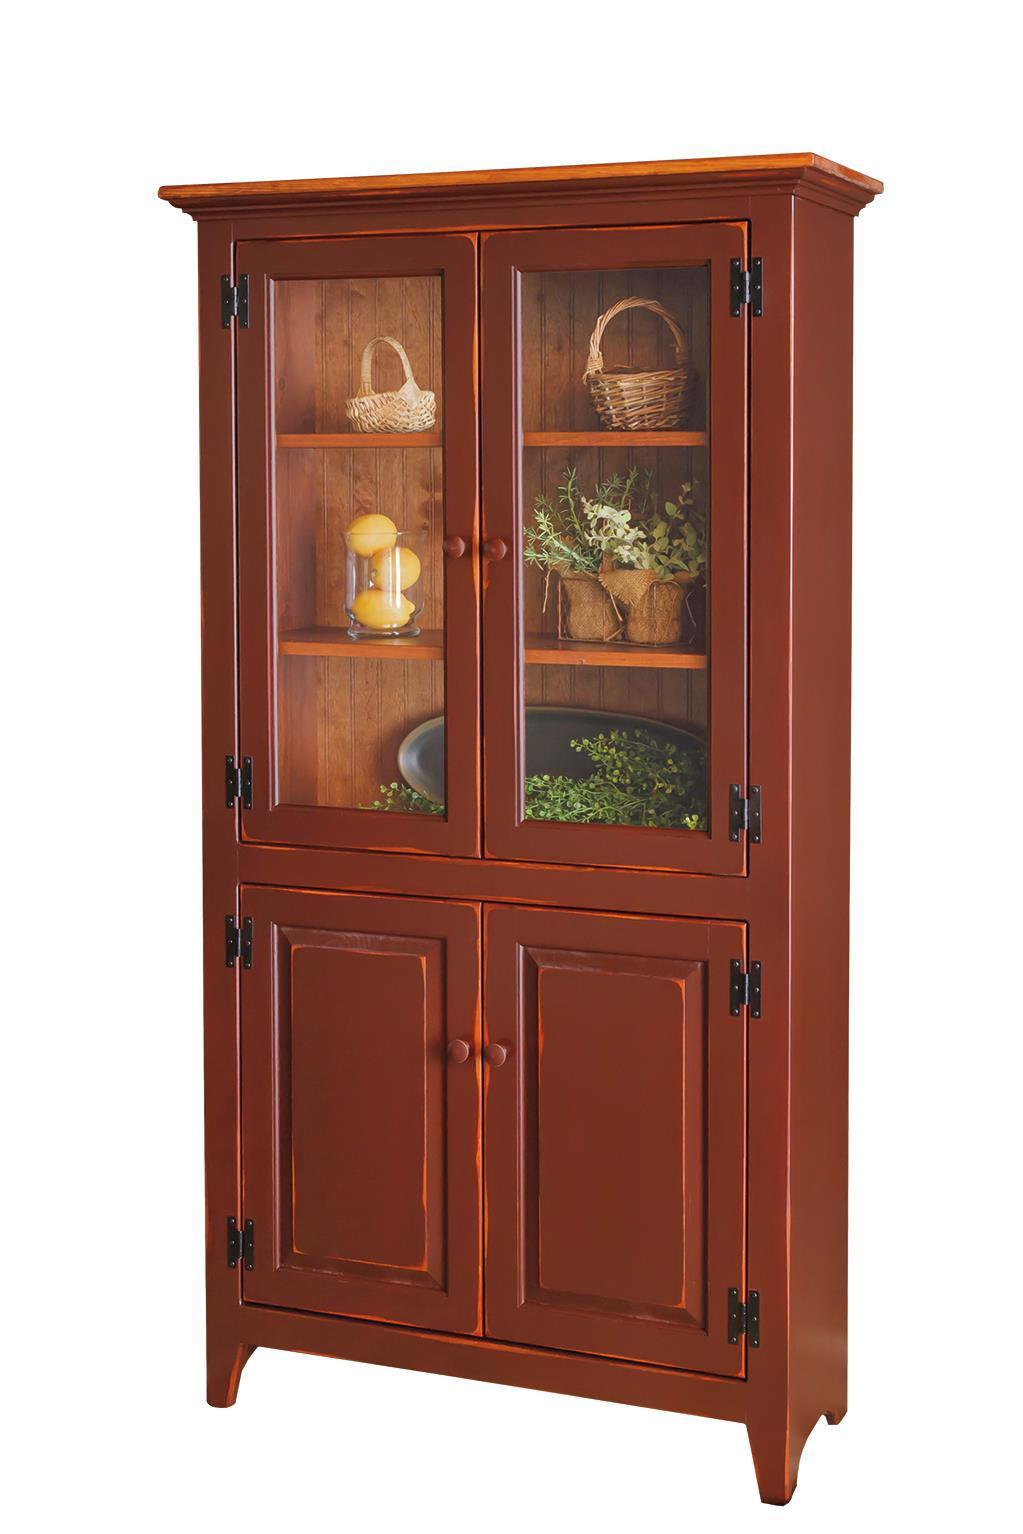 Pid 60435 Amish Pine 4 Door Pantry Cupboard 470 Jpg